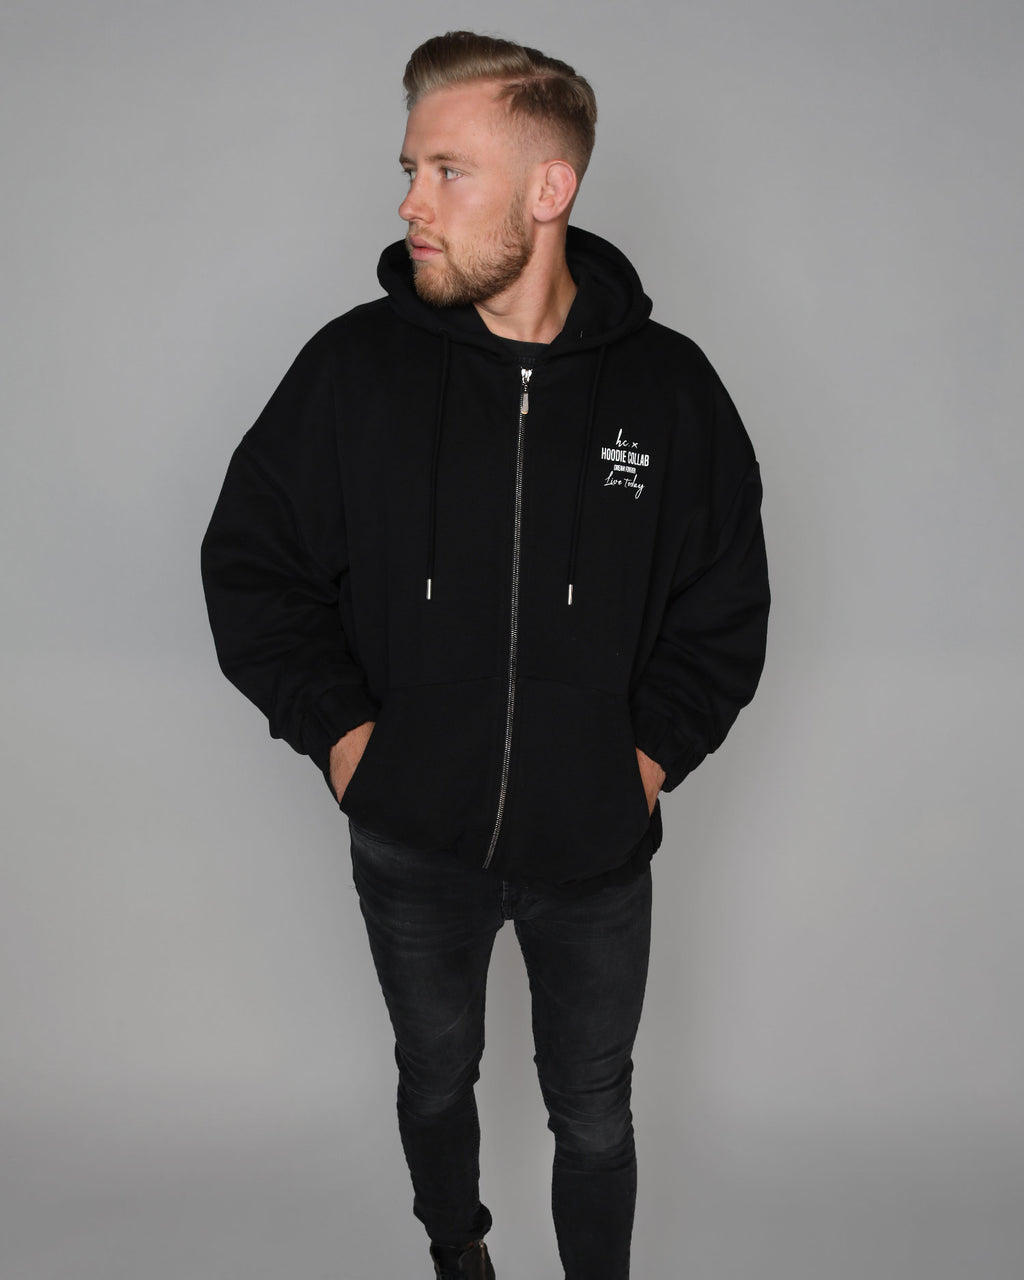 To The Moon Zip-Hoodie